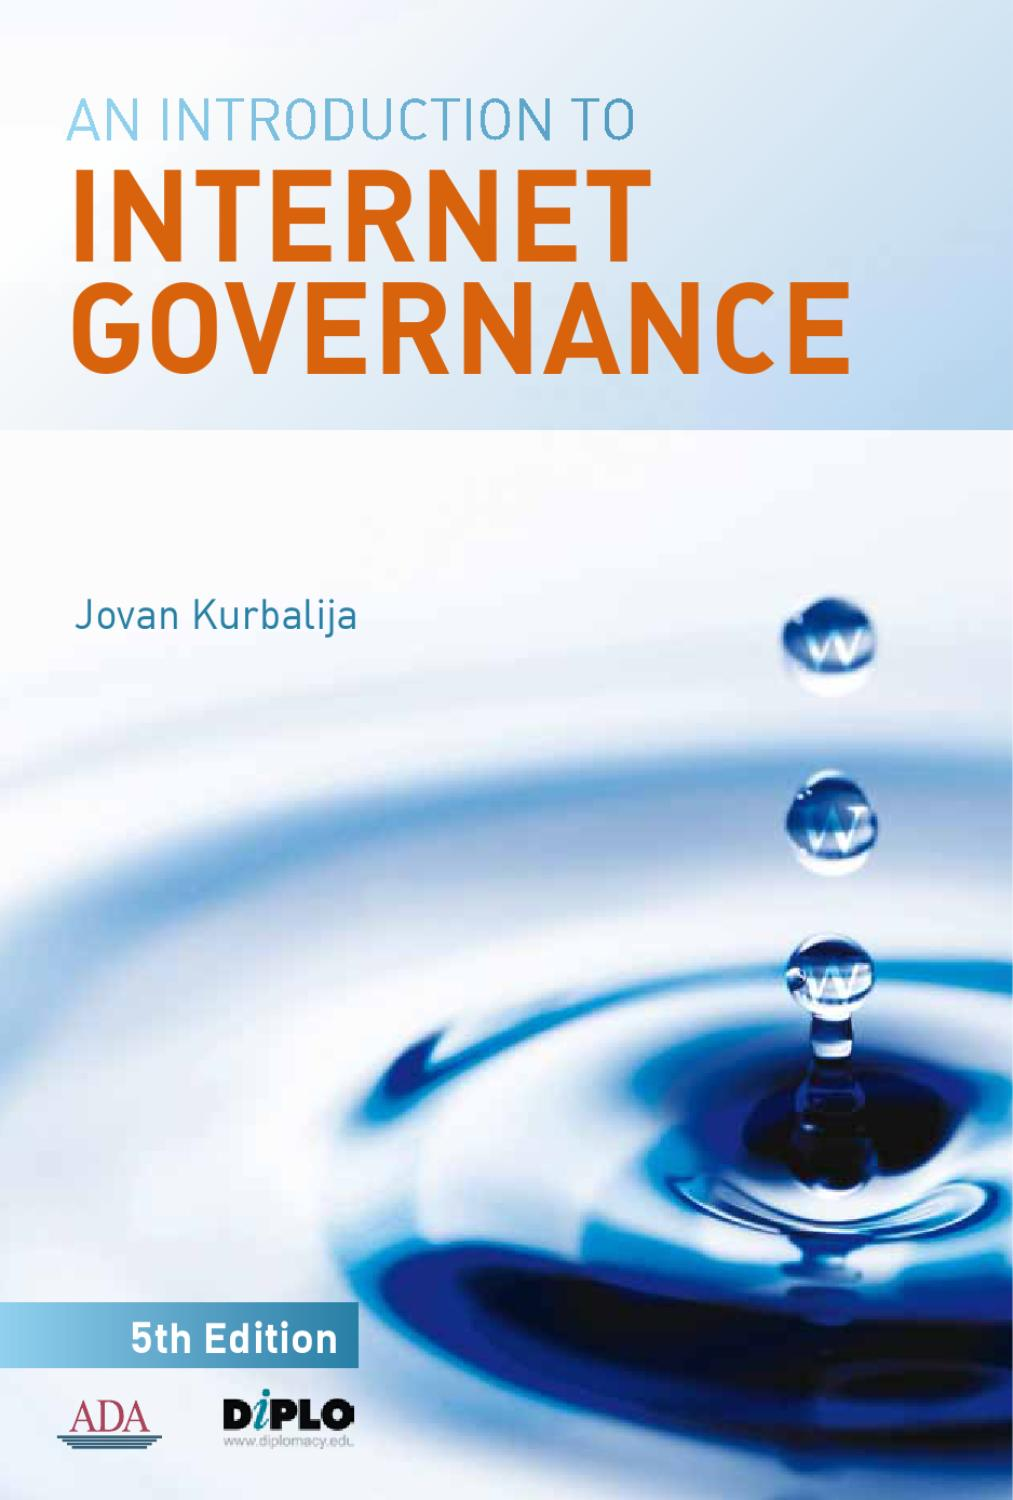 An Introduction to Internet Governance, 5th Edition by